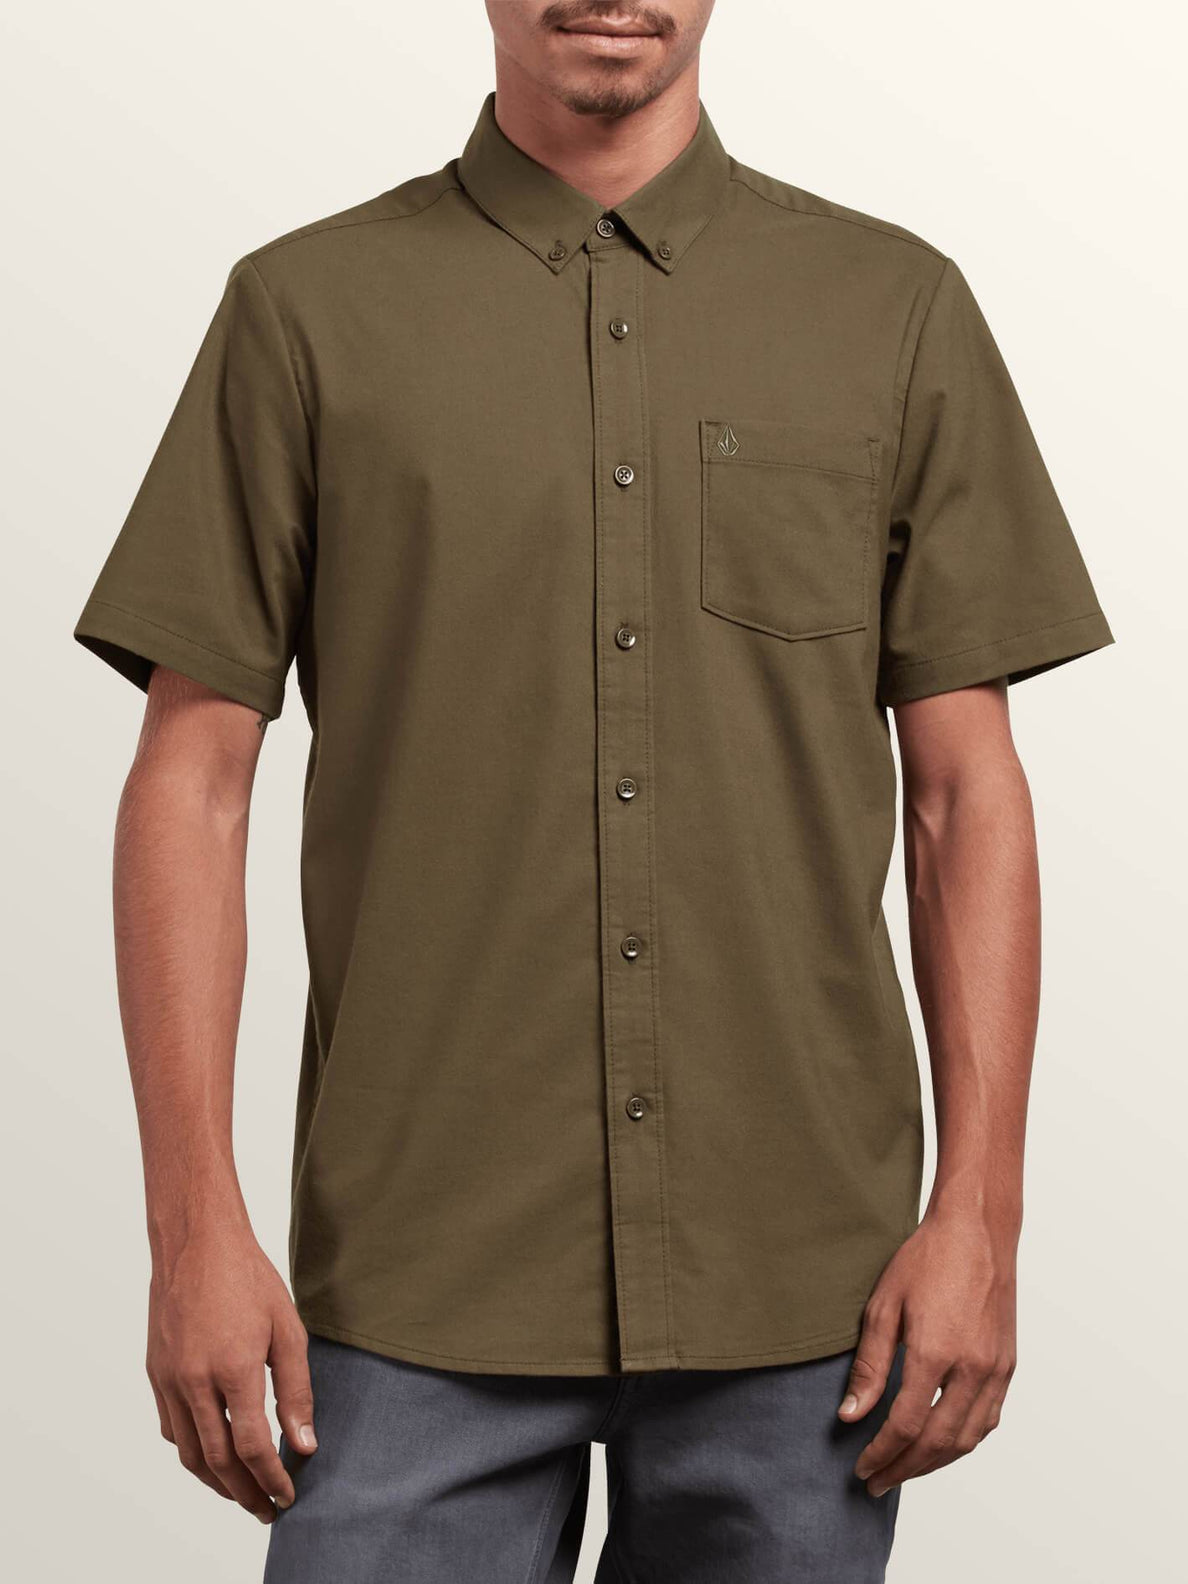 Everett Oxford Short Sleeve Shirt In Snow Military, Front View